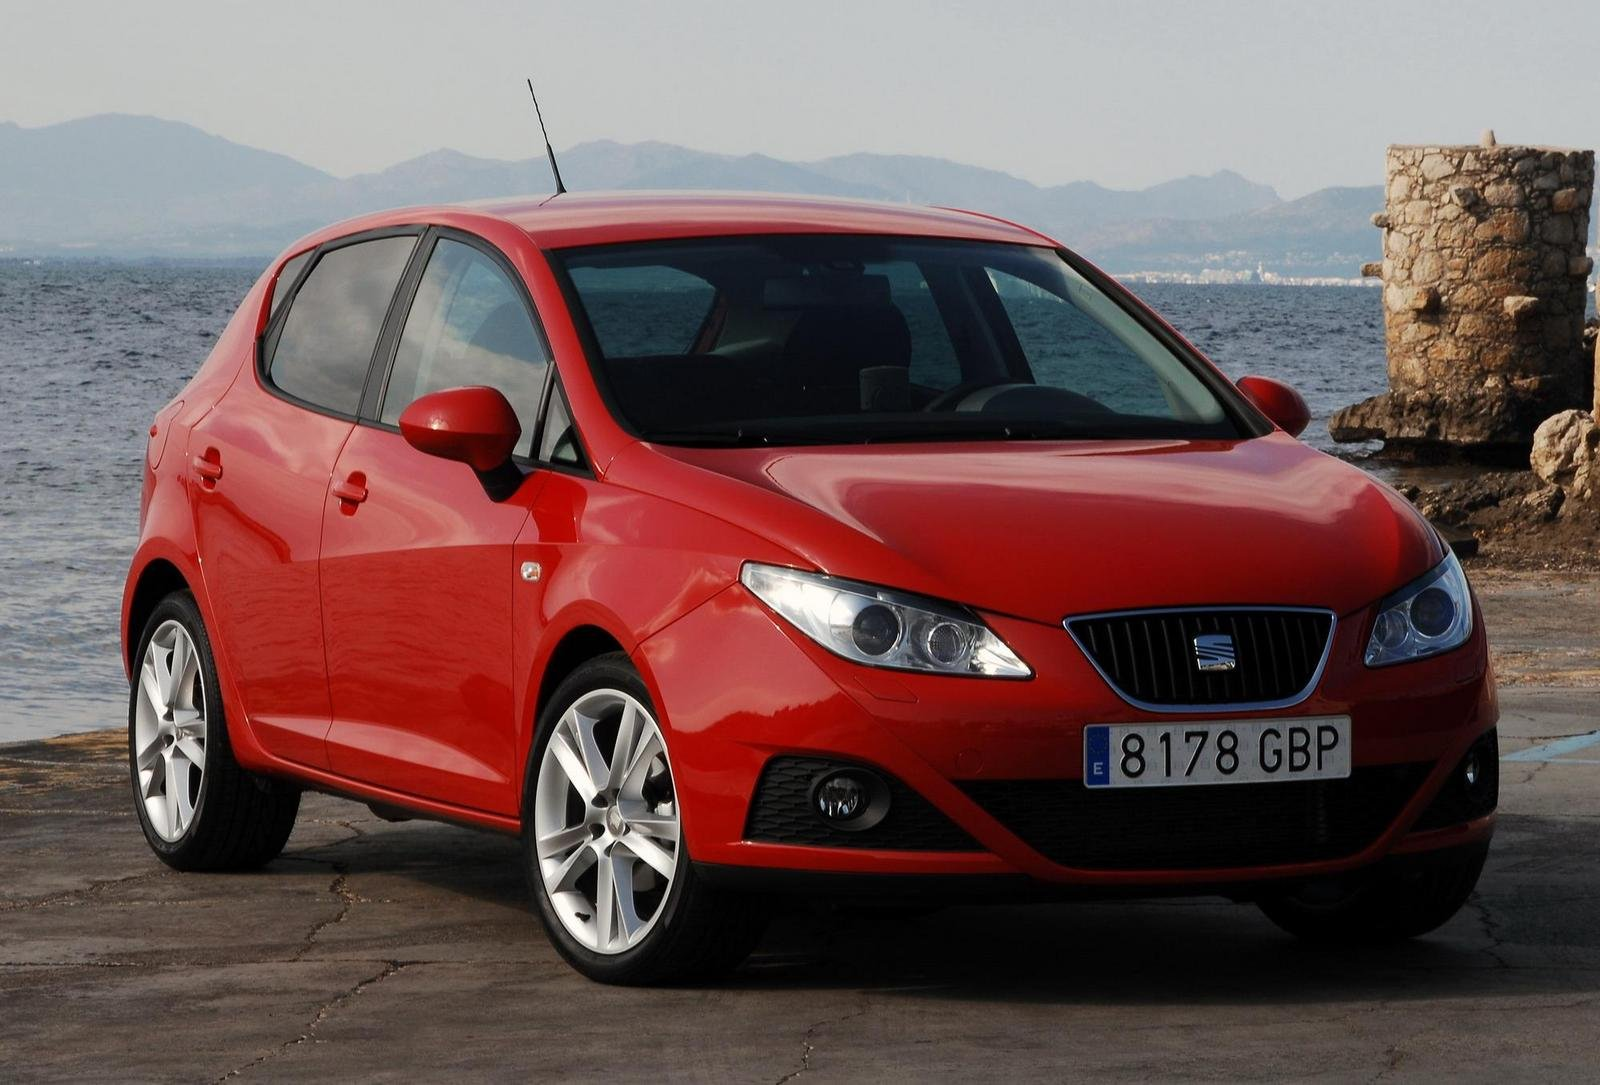 2009 seat ibiza 1 6 tdi cr review top speed. Black Bedroom Furniture Sets. Home Design Ideas